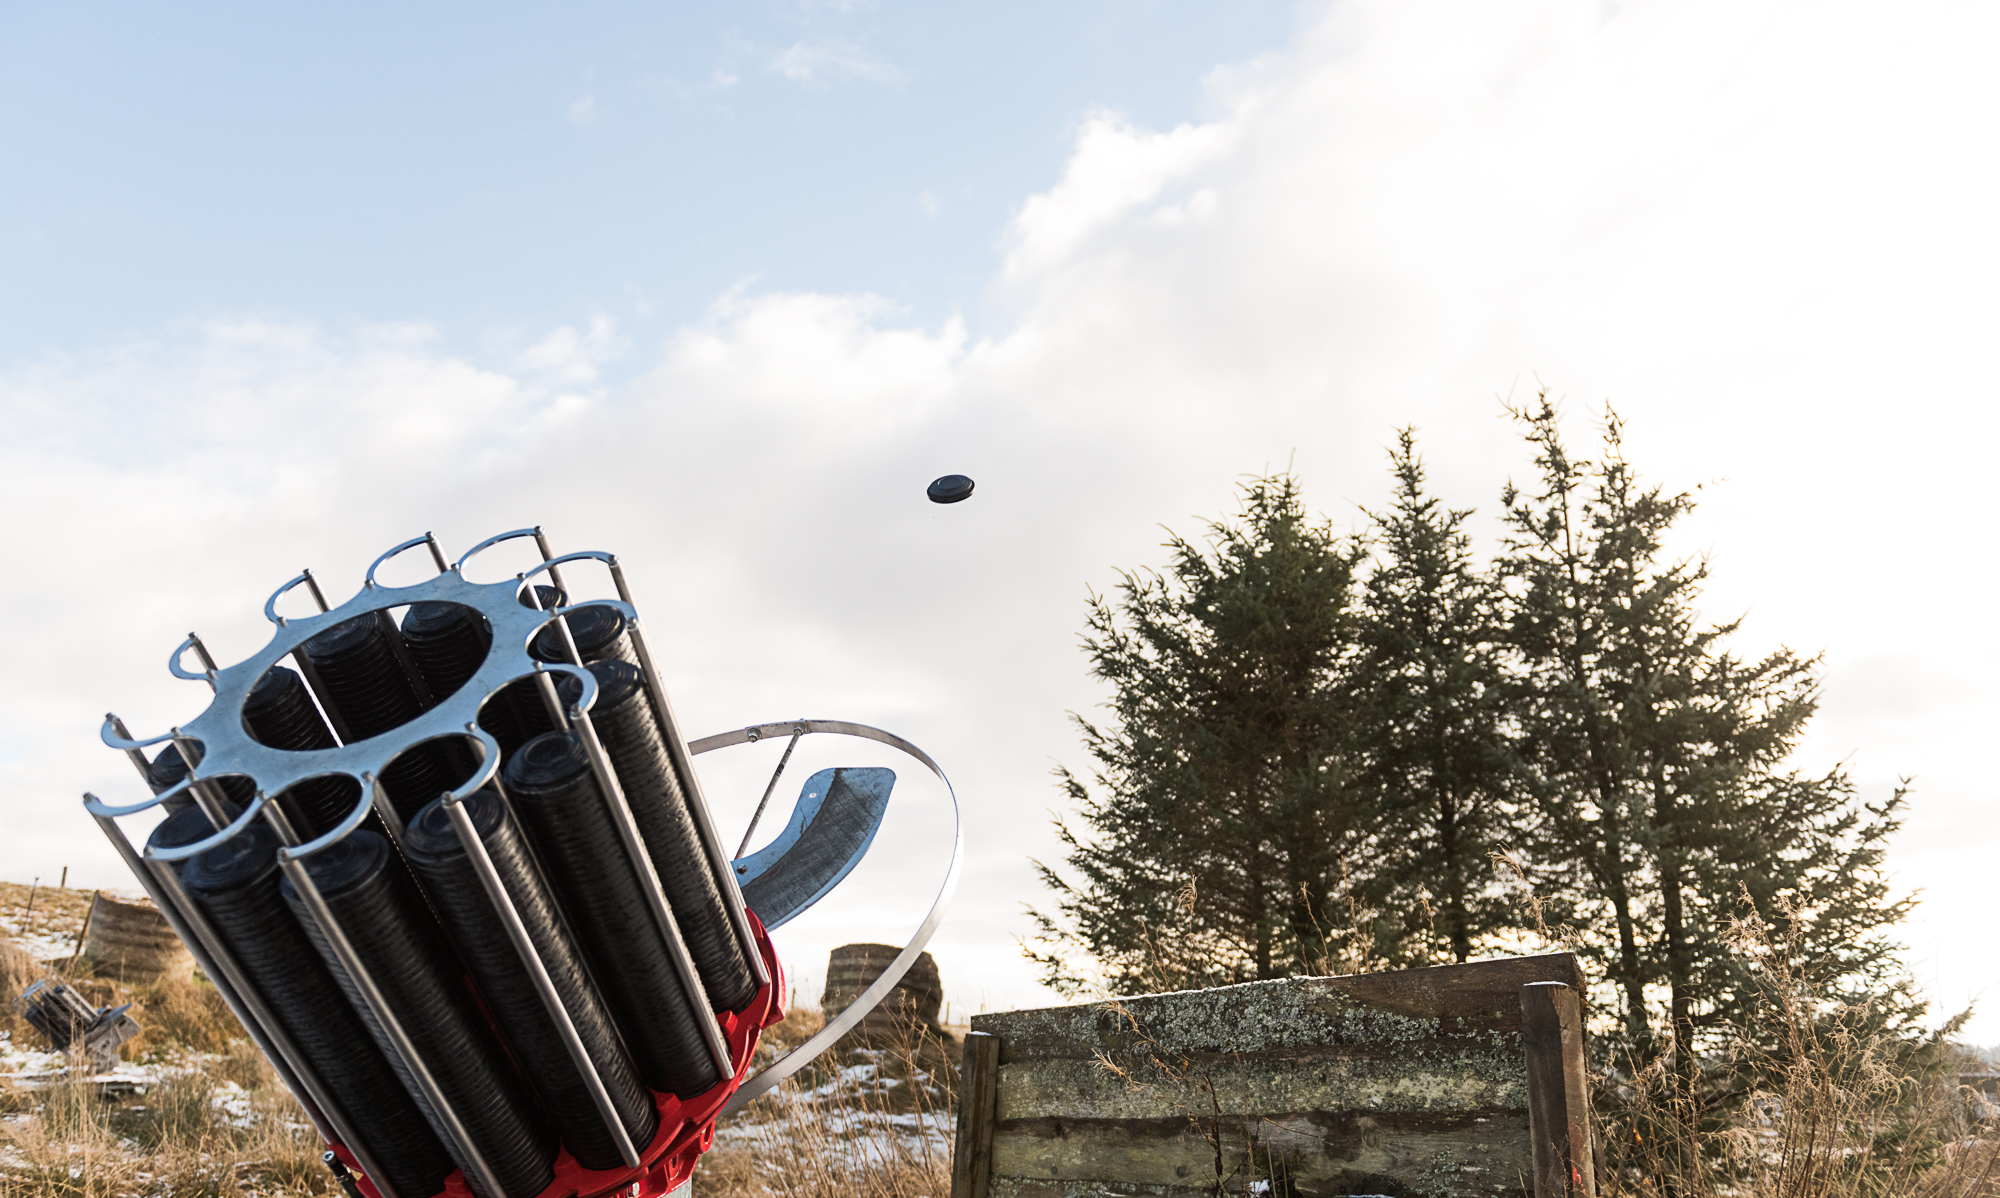 Clay pigeon trap in action at Don Coyote Outdoor Centre Scottish Borders Edinburgh